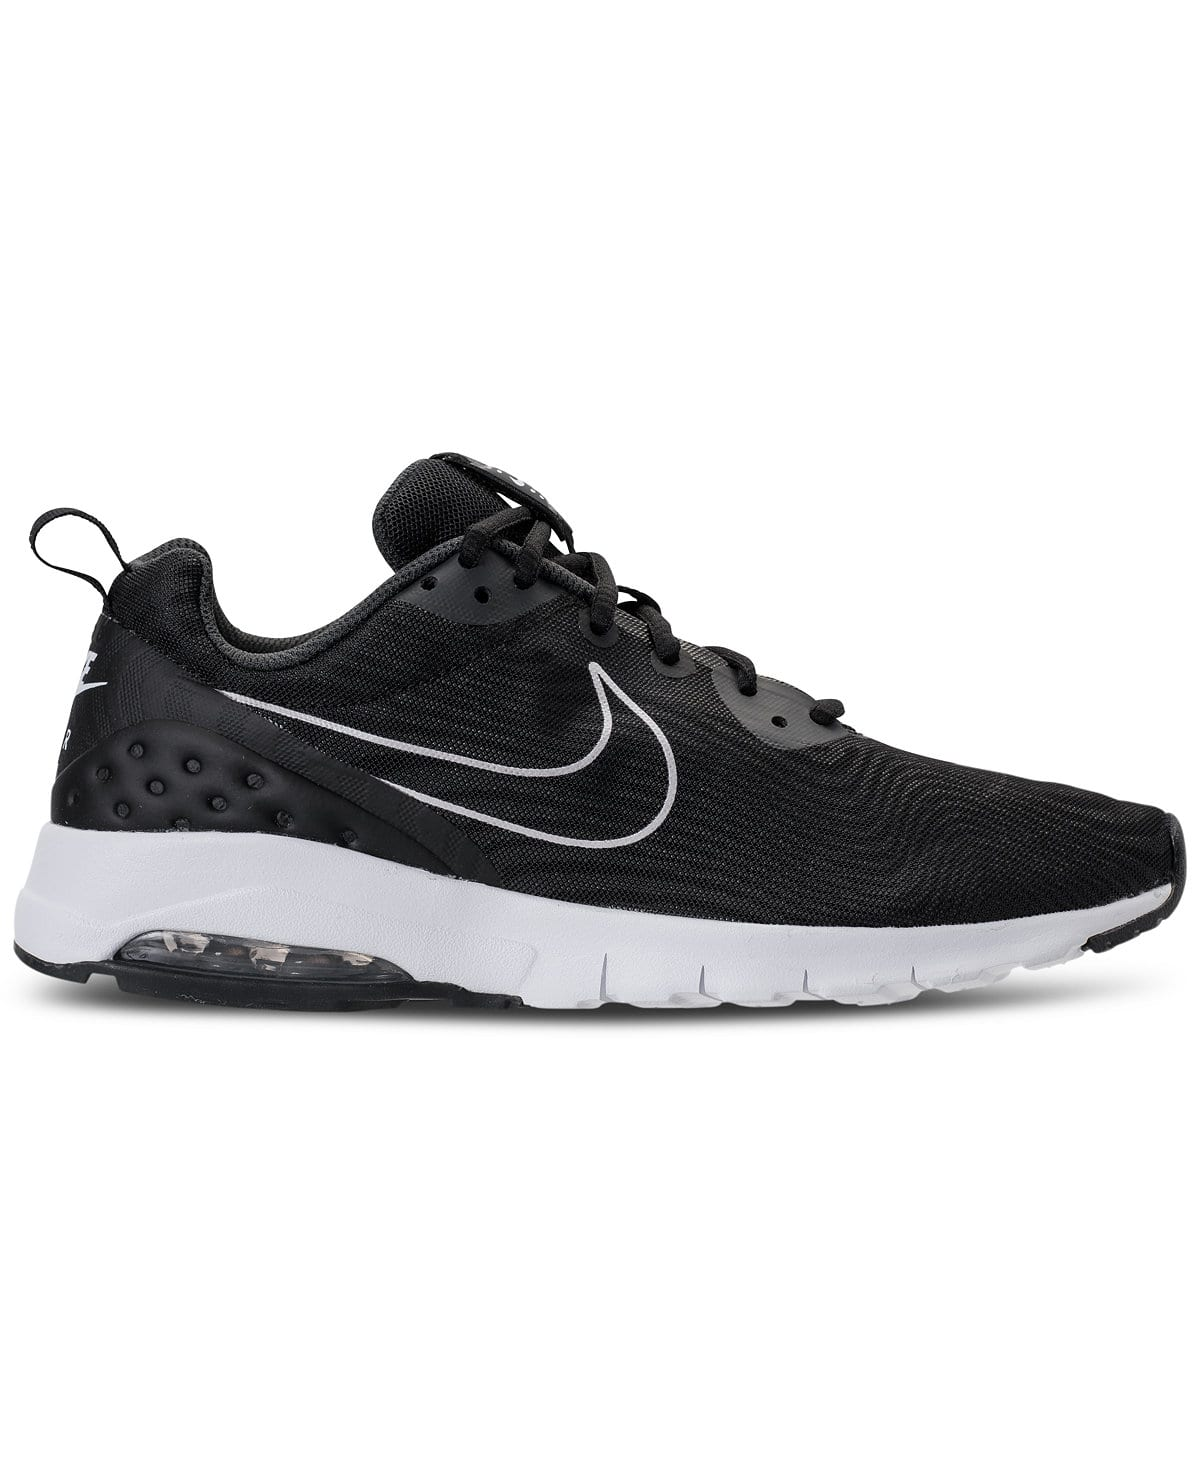 official photos a1167 d0127 Nike Men s Air Max Motion LW Premium Running Sneakers (Black ...